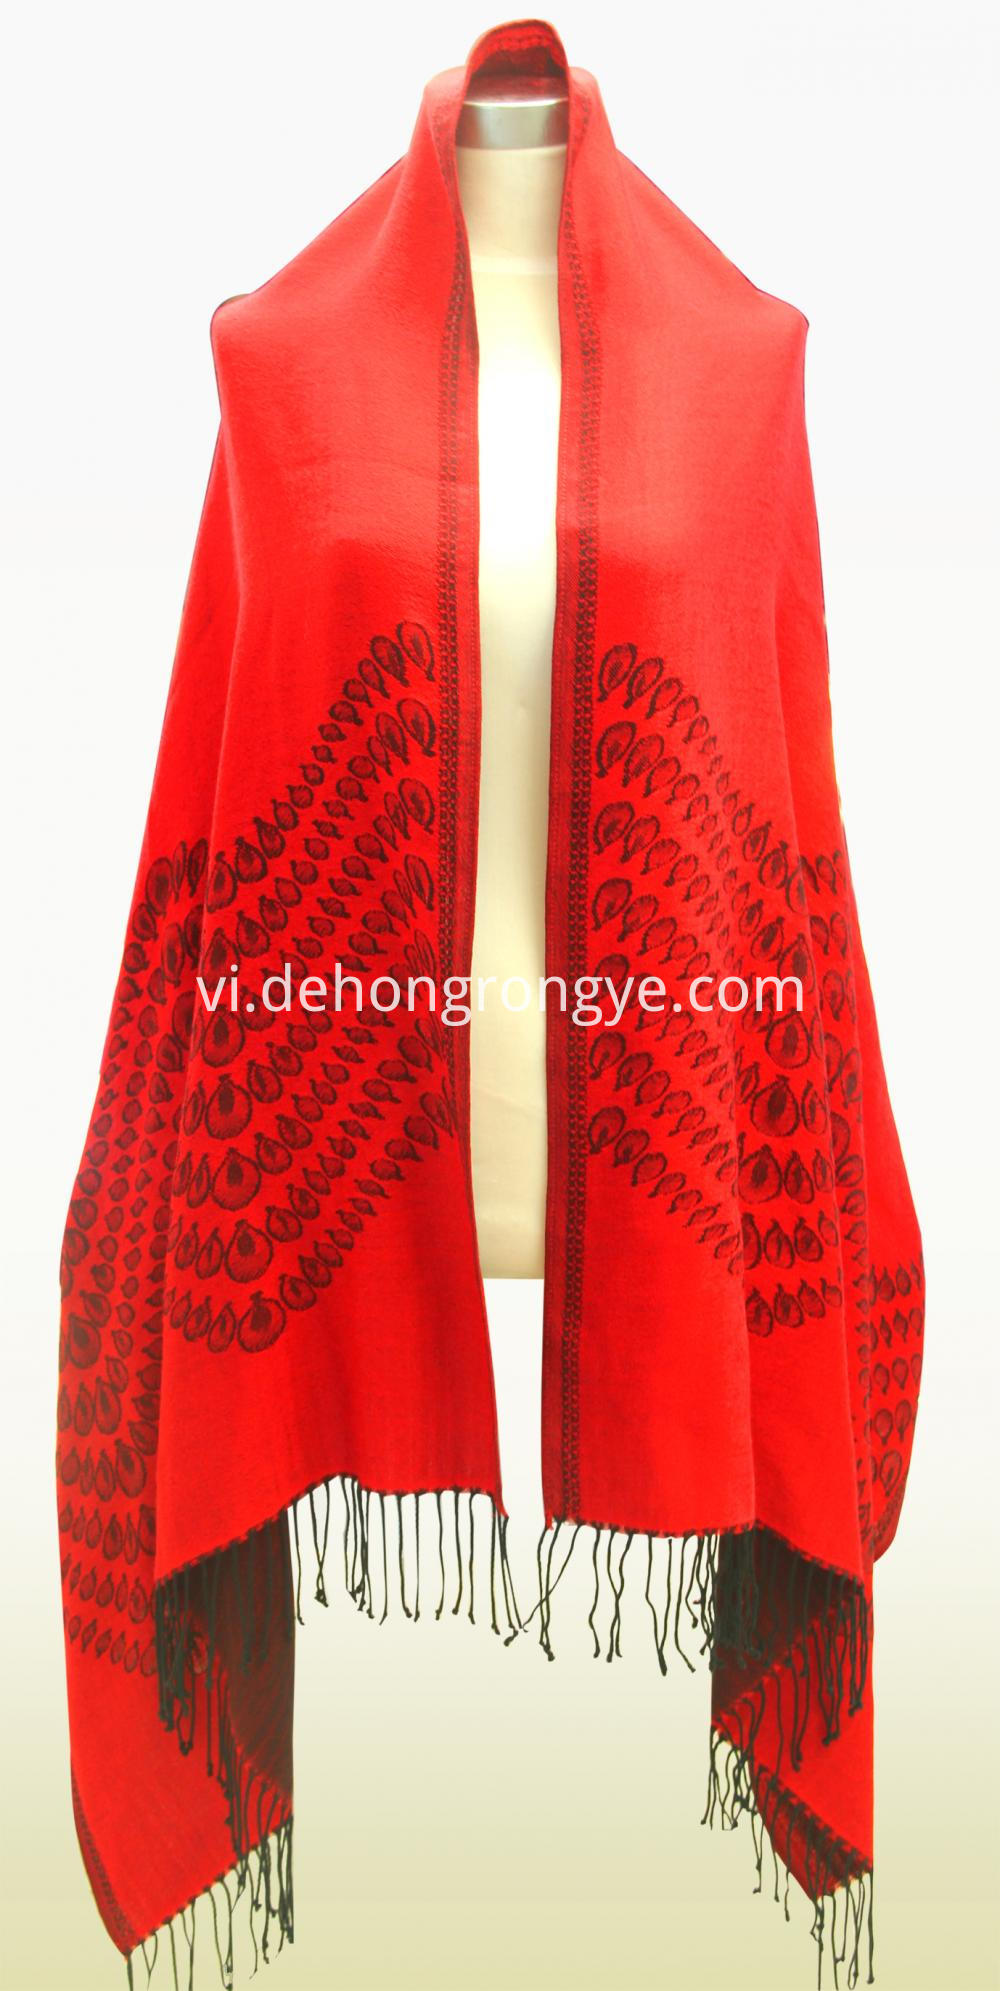 Big Red Worsted Cashmere Jacquard Shawl